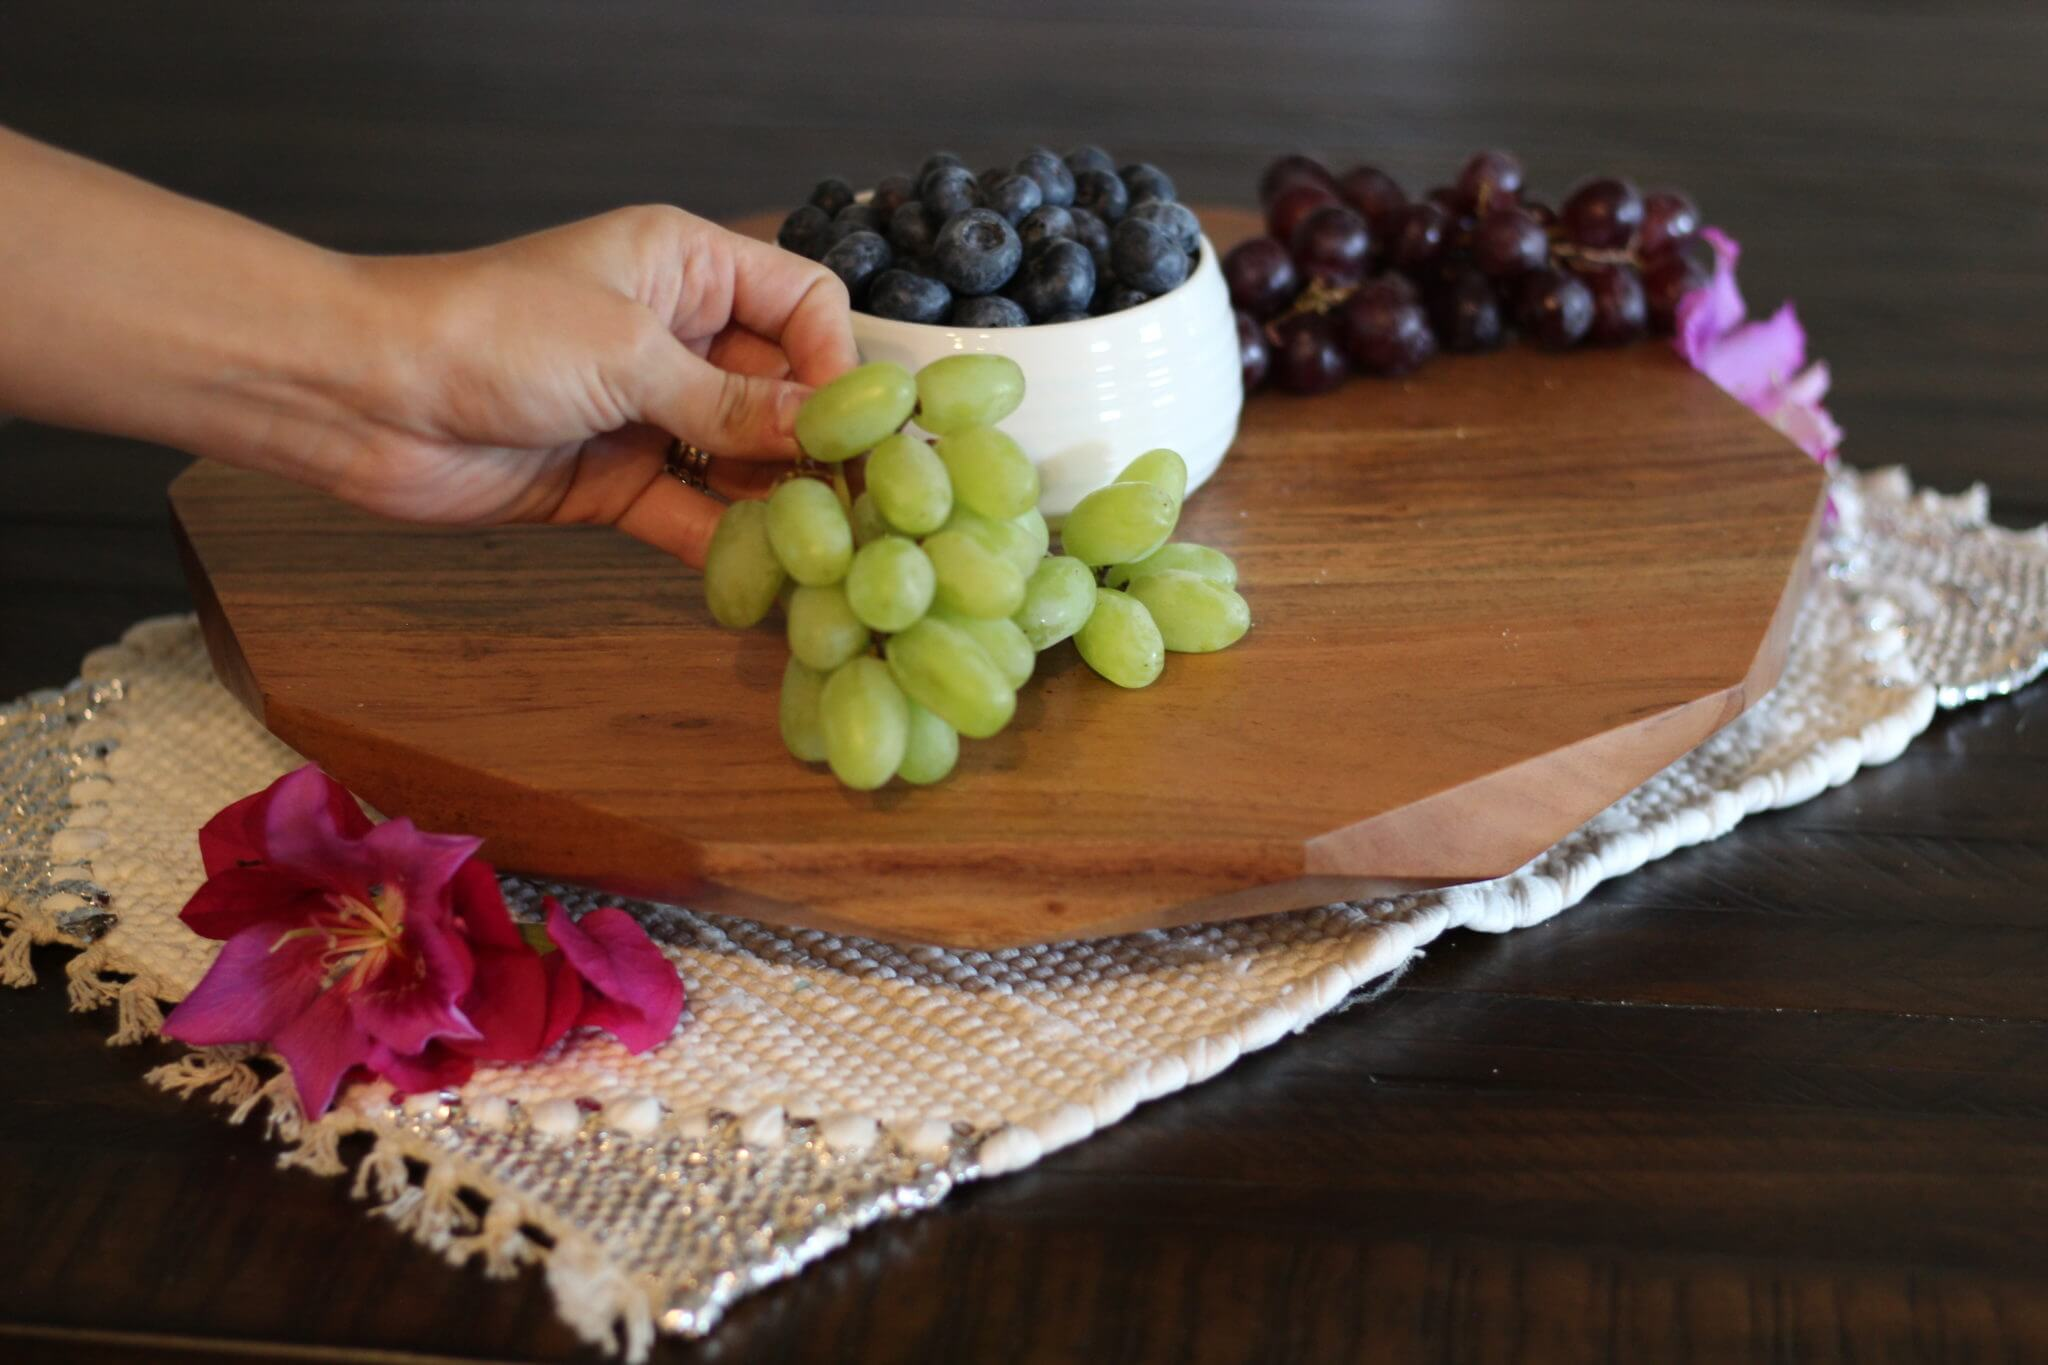 White and Red Grapes With Wish Farms Berries